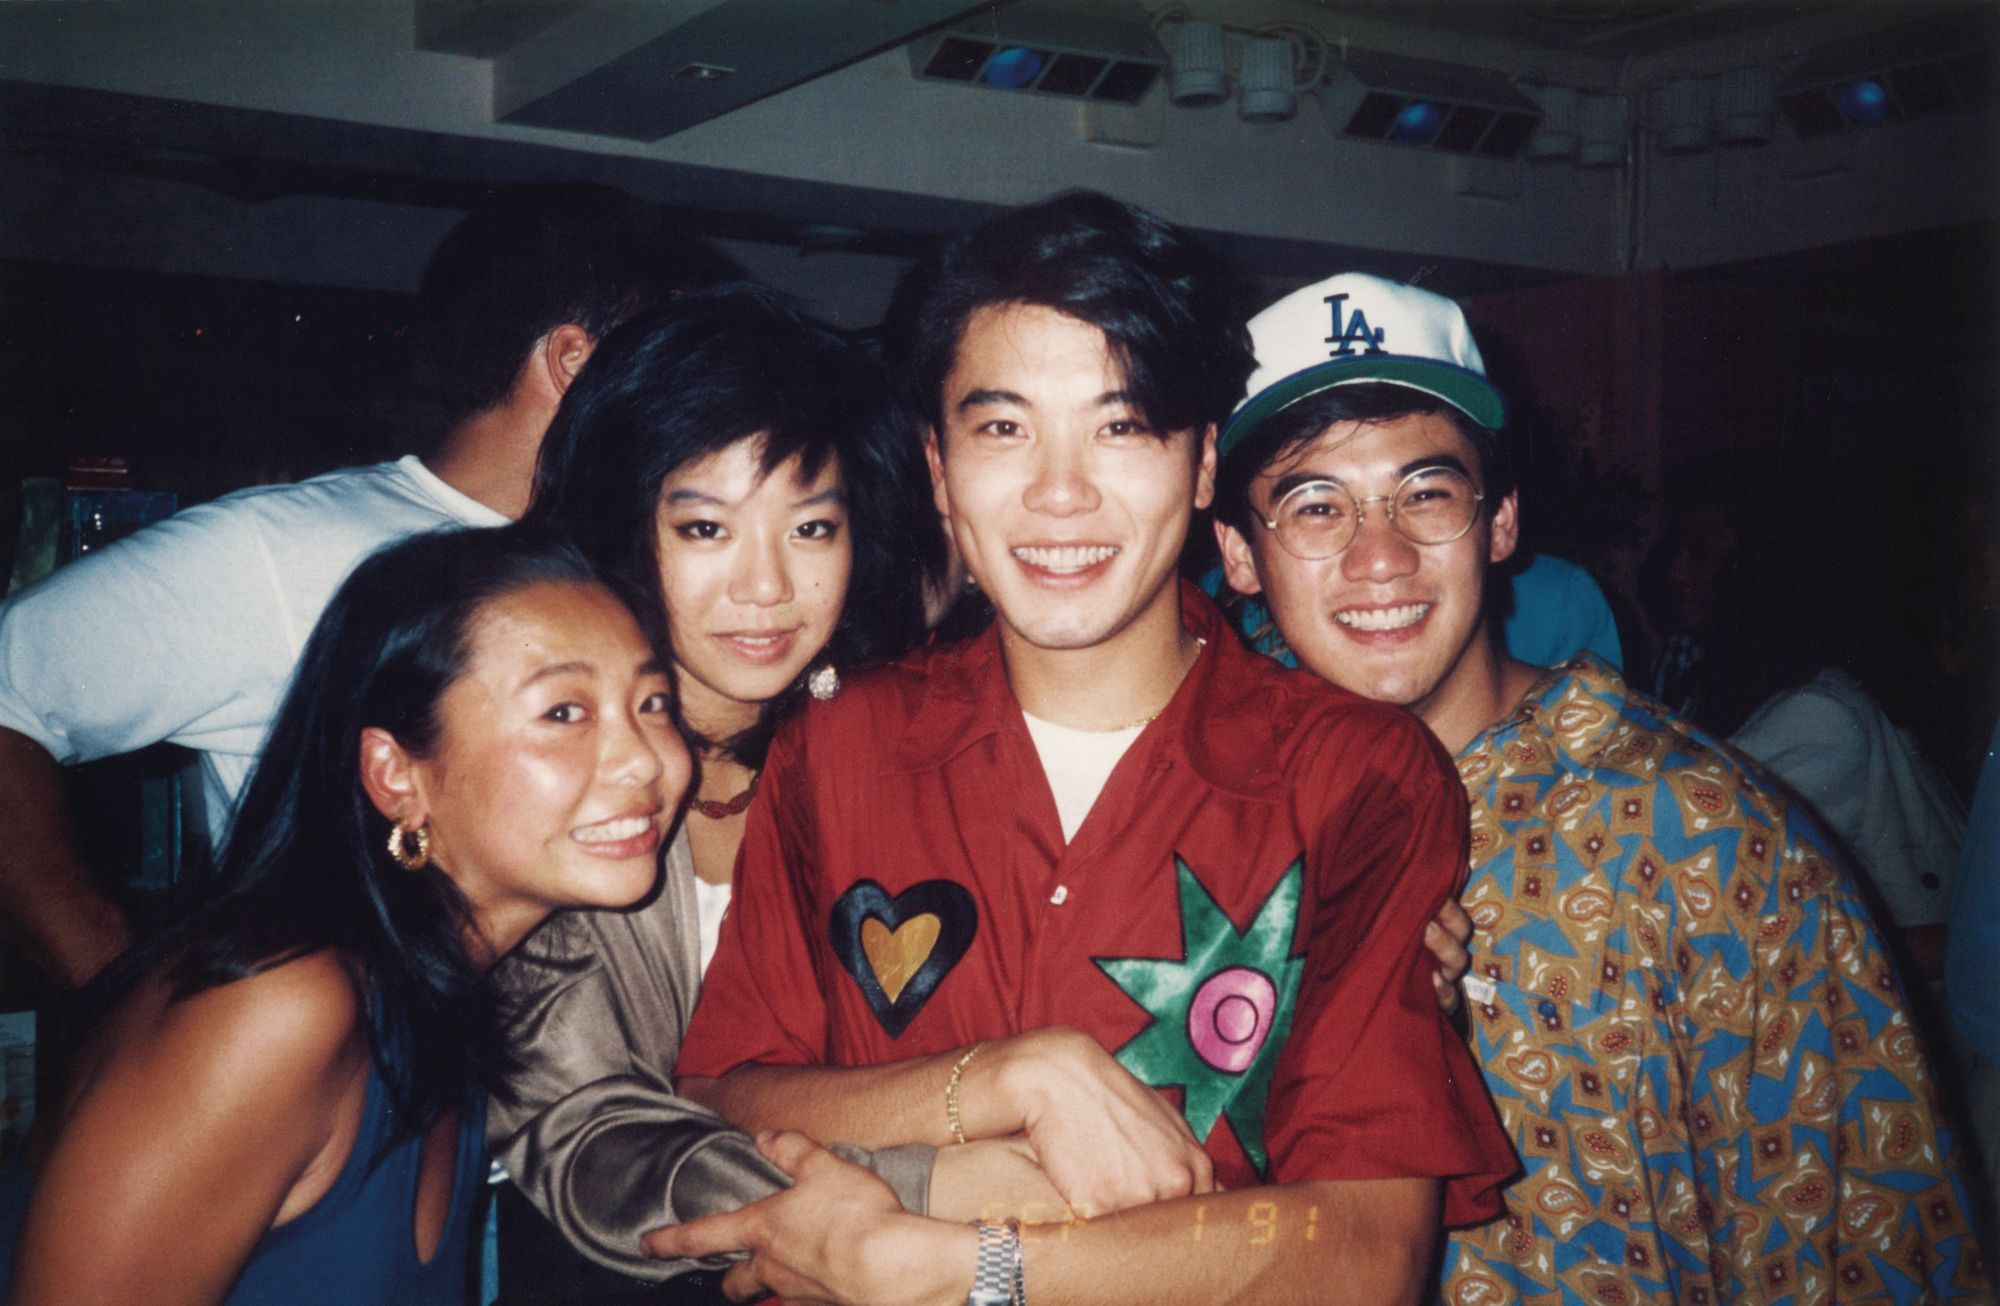 Peter Cheung On His Favourite Summer Memories And Holiday Plans